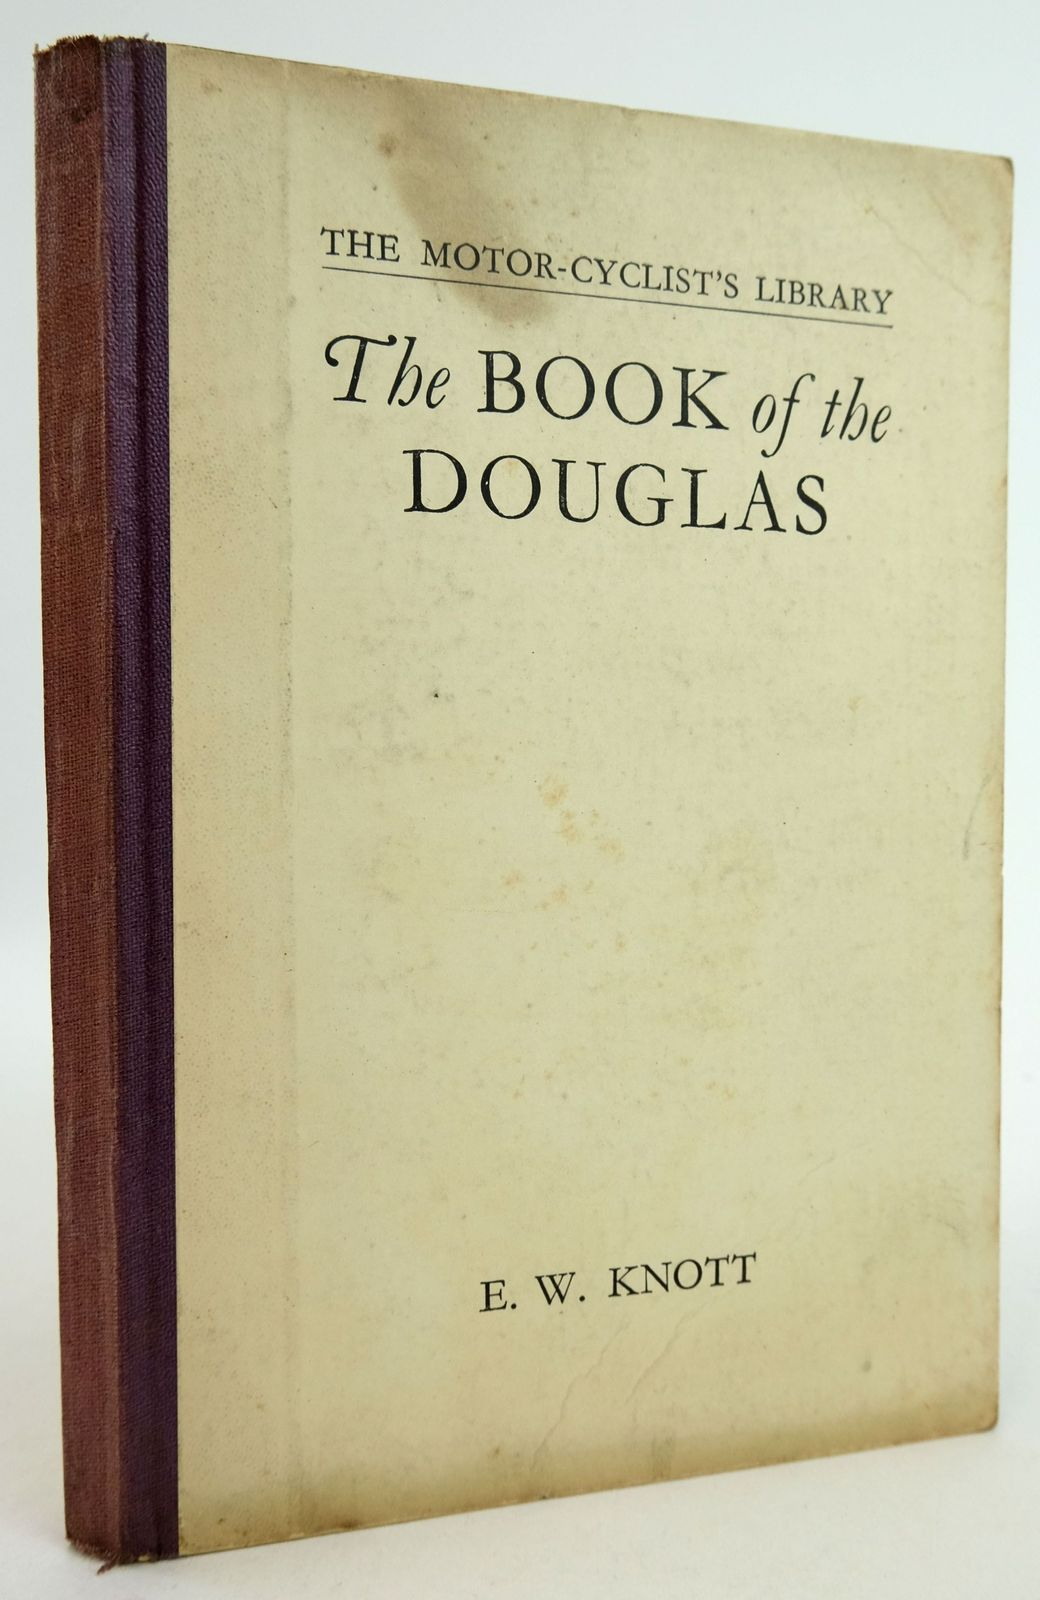 Photo of THE BOOK OF THE DOUGLAS (THE MOTOR-CYCLIST'S LIBRARY)- Stock Number: 1819461